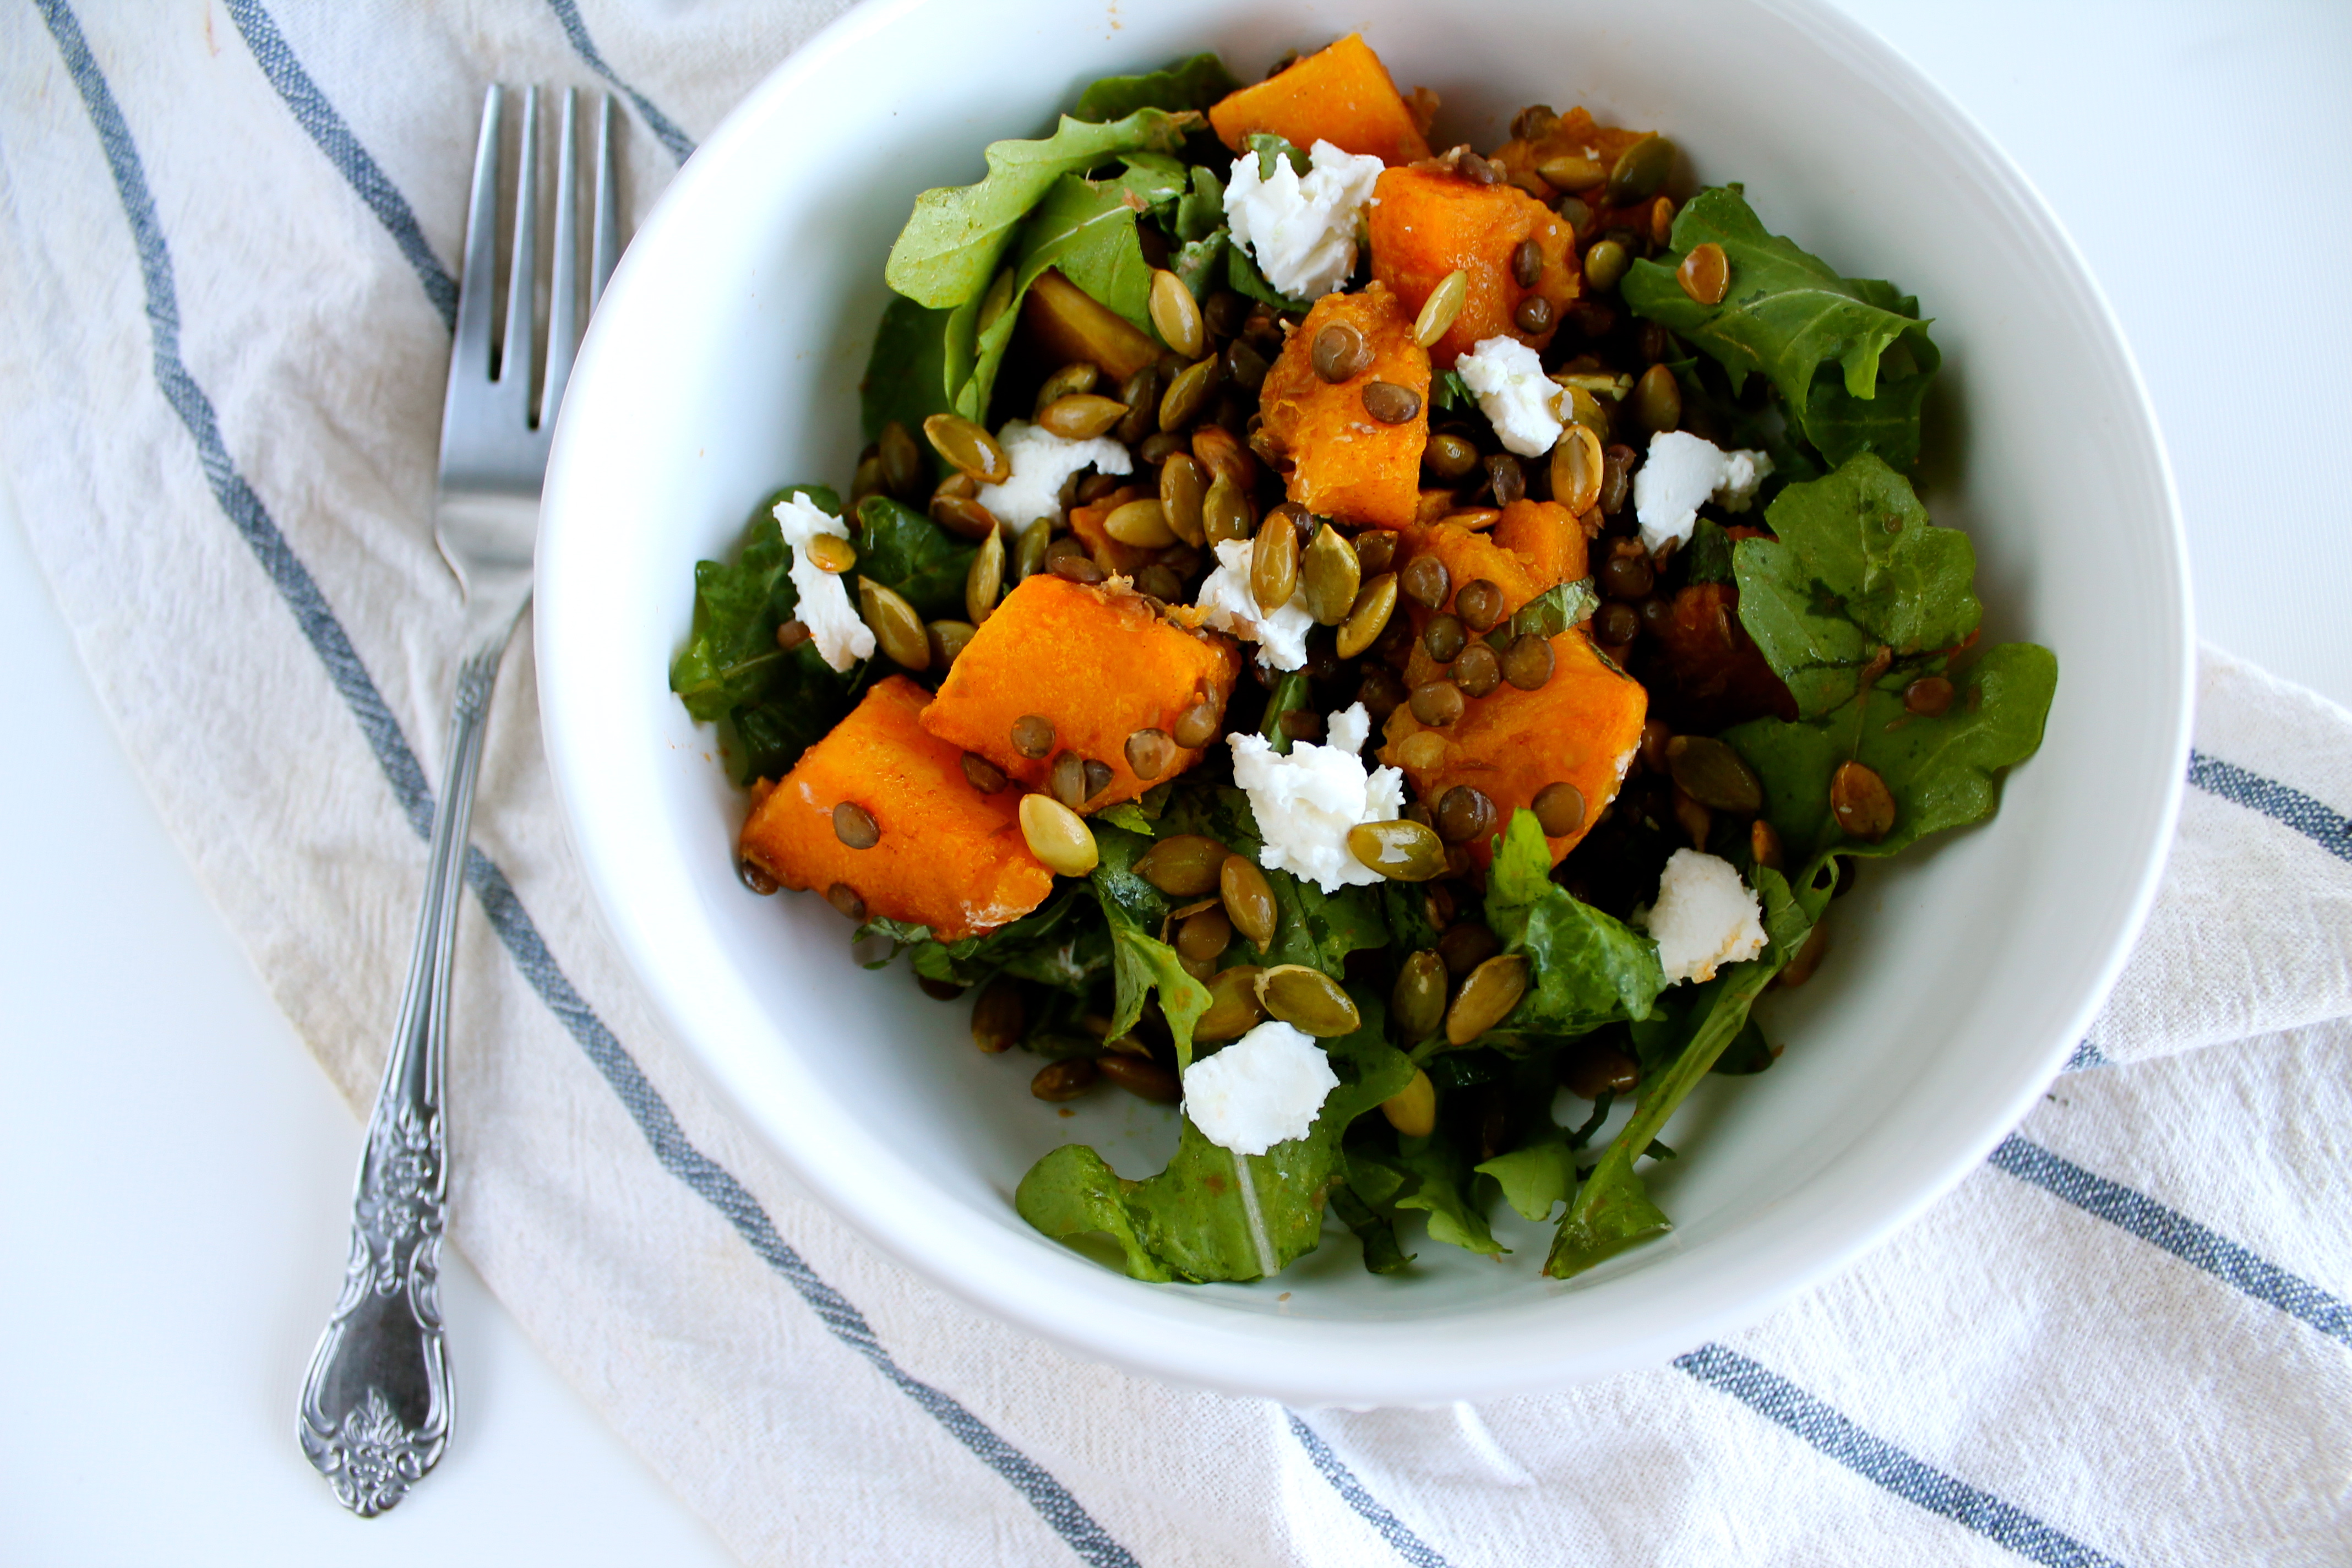 Spicy Squash and Lentil Salad with Goat Cheese